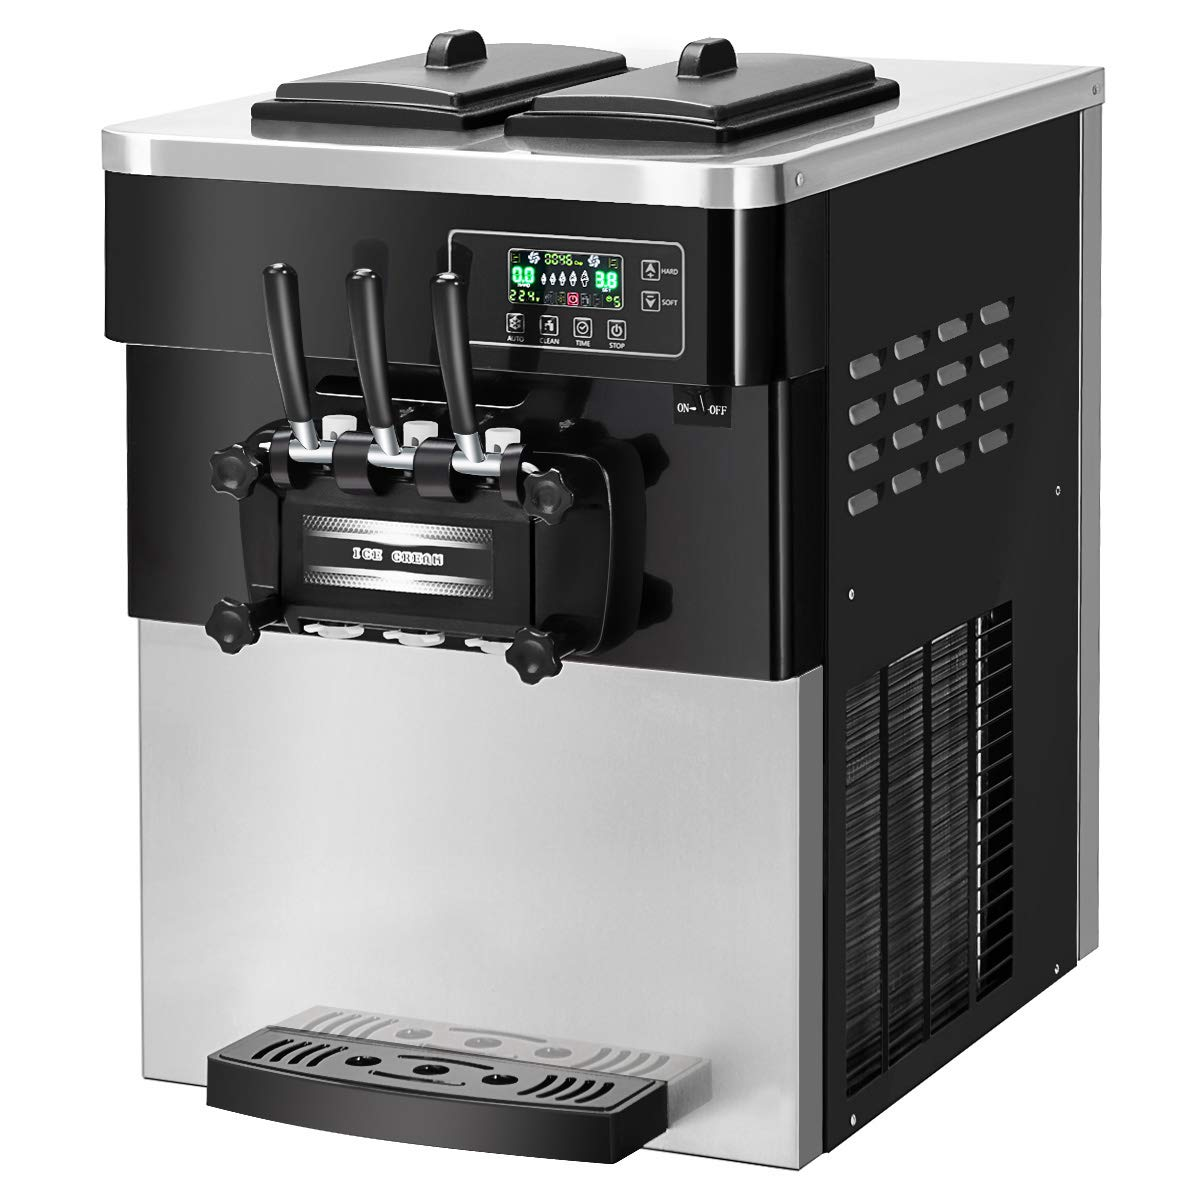 COSTWAY Ice Cream Machine Commercial Automatic 2200W 20-28L/5.3-7.4Gallon Per Hour Soft & Hard Serve Ice Cream Maker with LCD Display Screen, Auto Shut-Off Timer, 3 Flavors